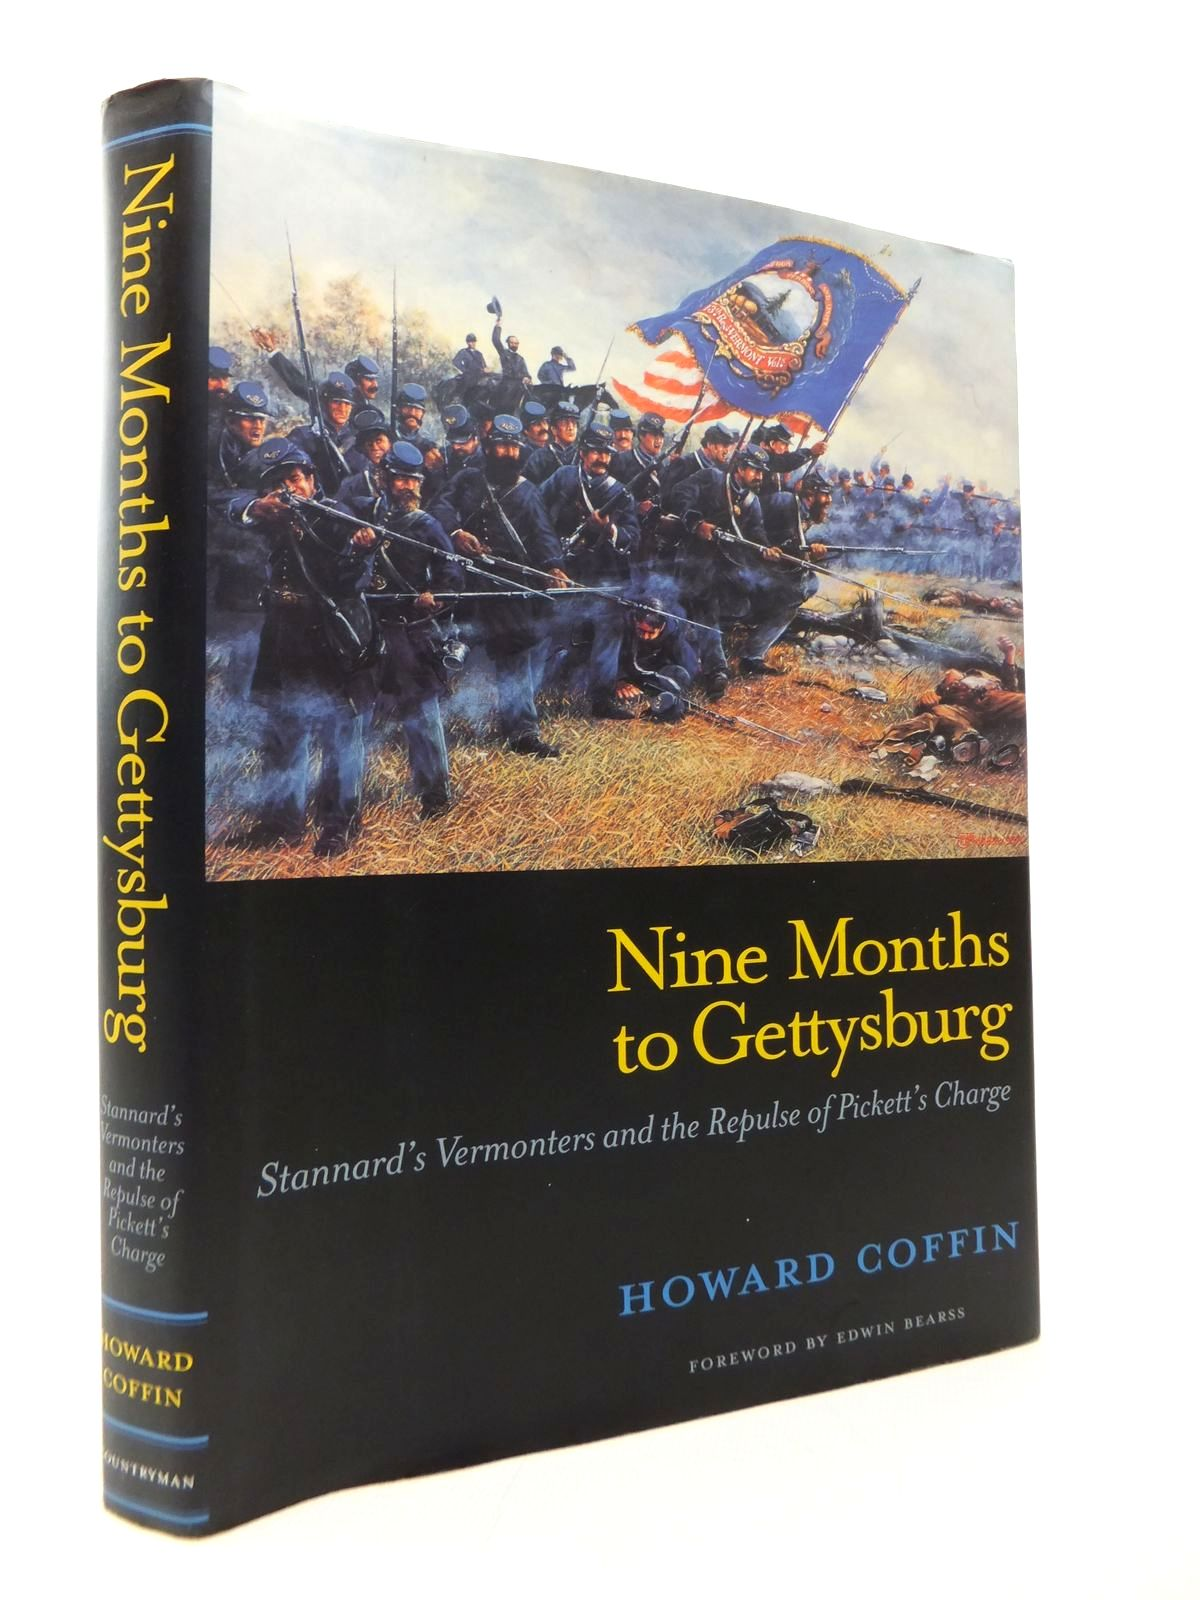 Photo of NINE MONTHS TO GETTYSBURG: STANNARD'S VERMONTERS AND THE REPULSE OF PICKETT'S CHARGE written by Coffin, Howard published by The Countryman Press (STOCK CODE: 1814239)  for sale by Stella & Rose's Books